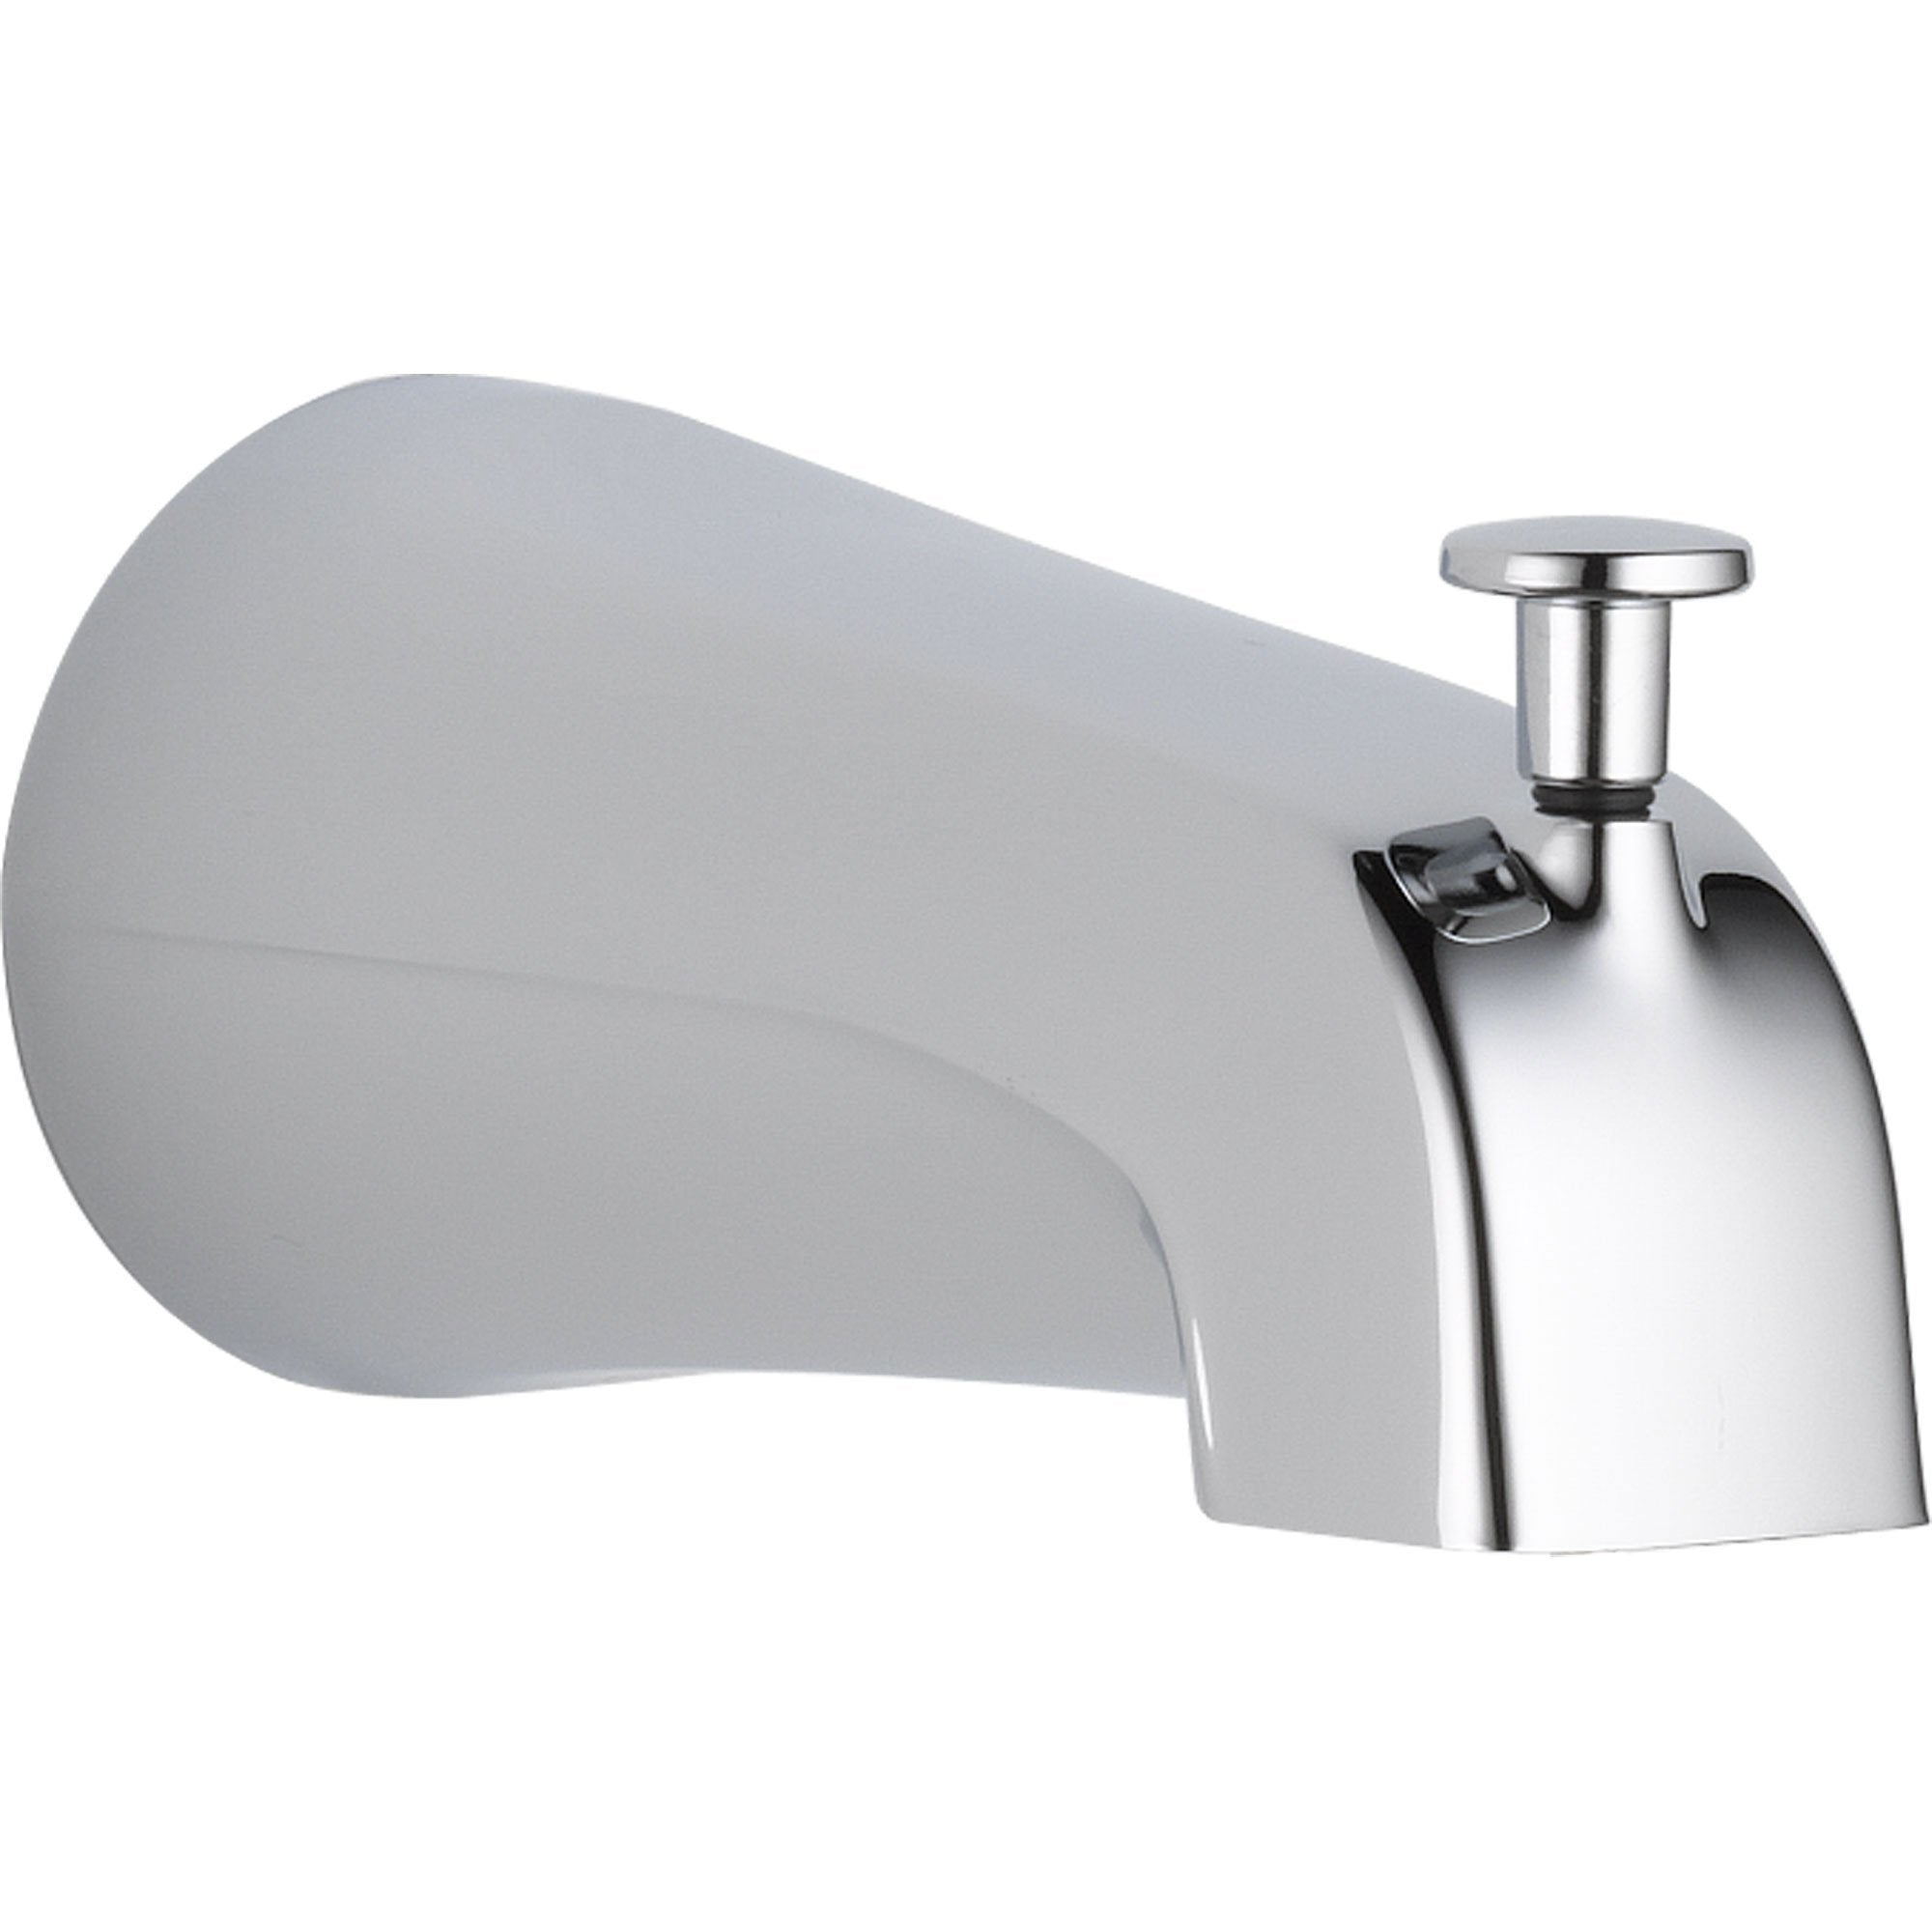 Delta 5.56 In. Long Pull-up Diverter Tub Spout in Chrome 563243